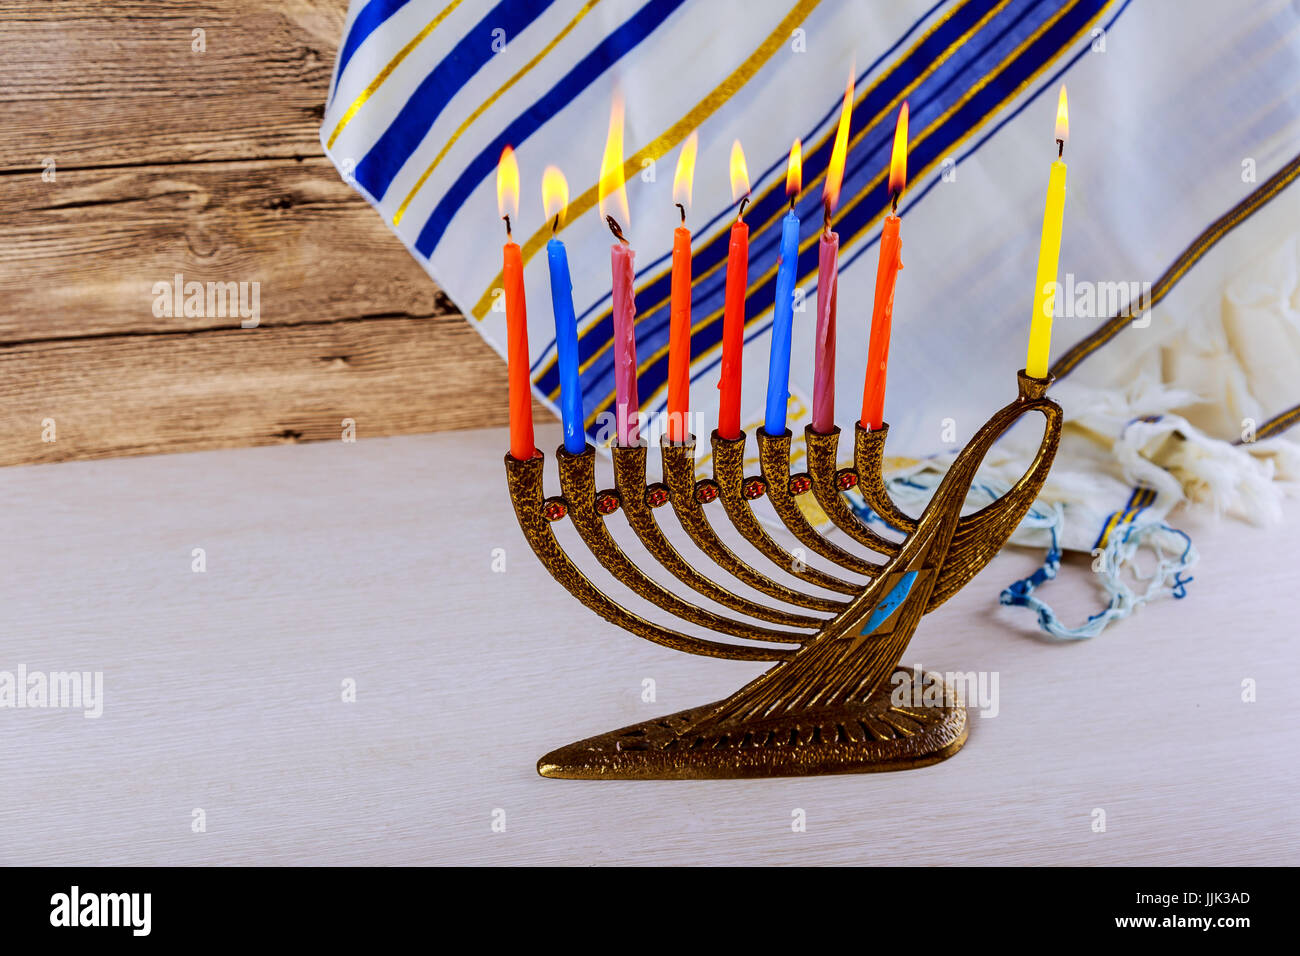 jewish holiday Hanukkah with menorah over wooden table - Stock Image